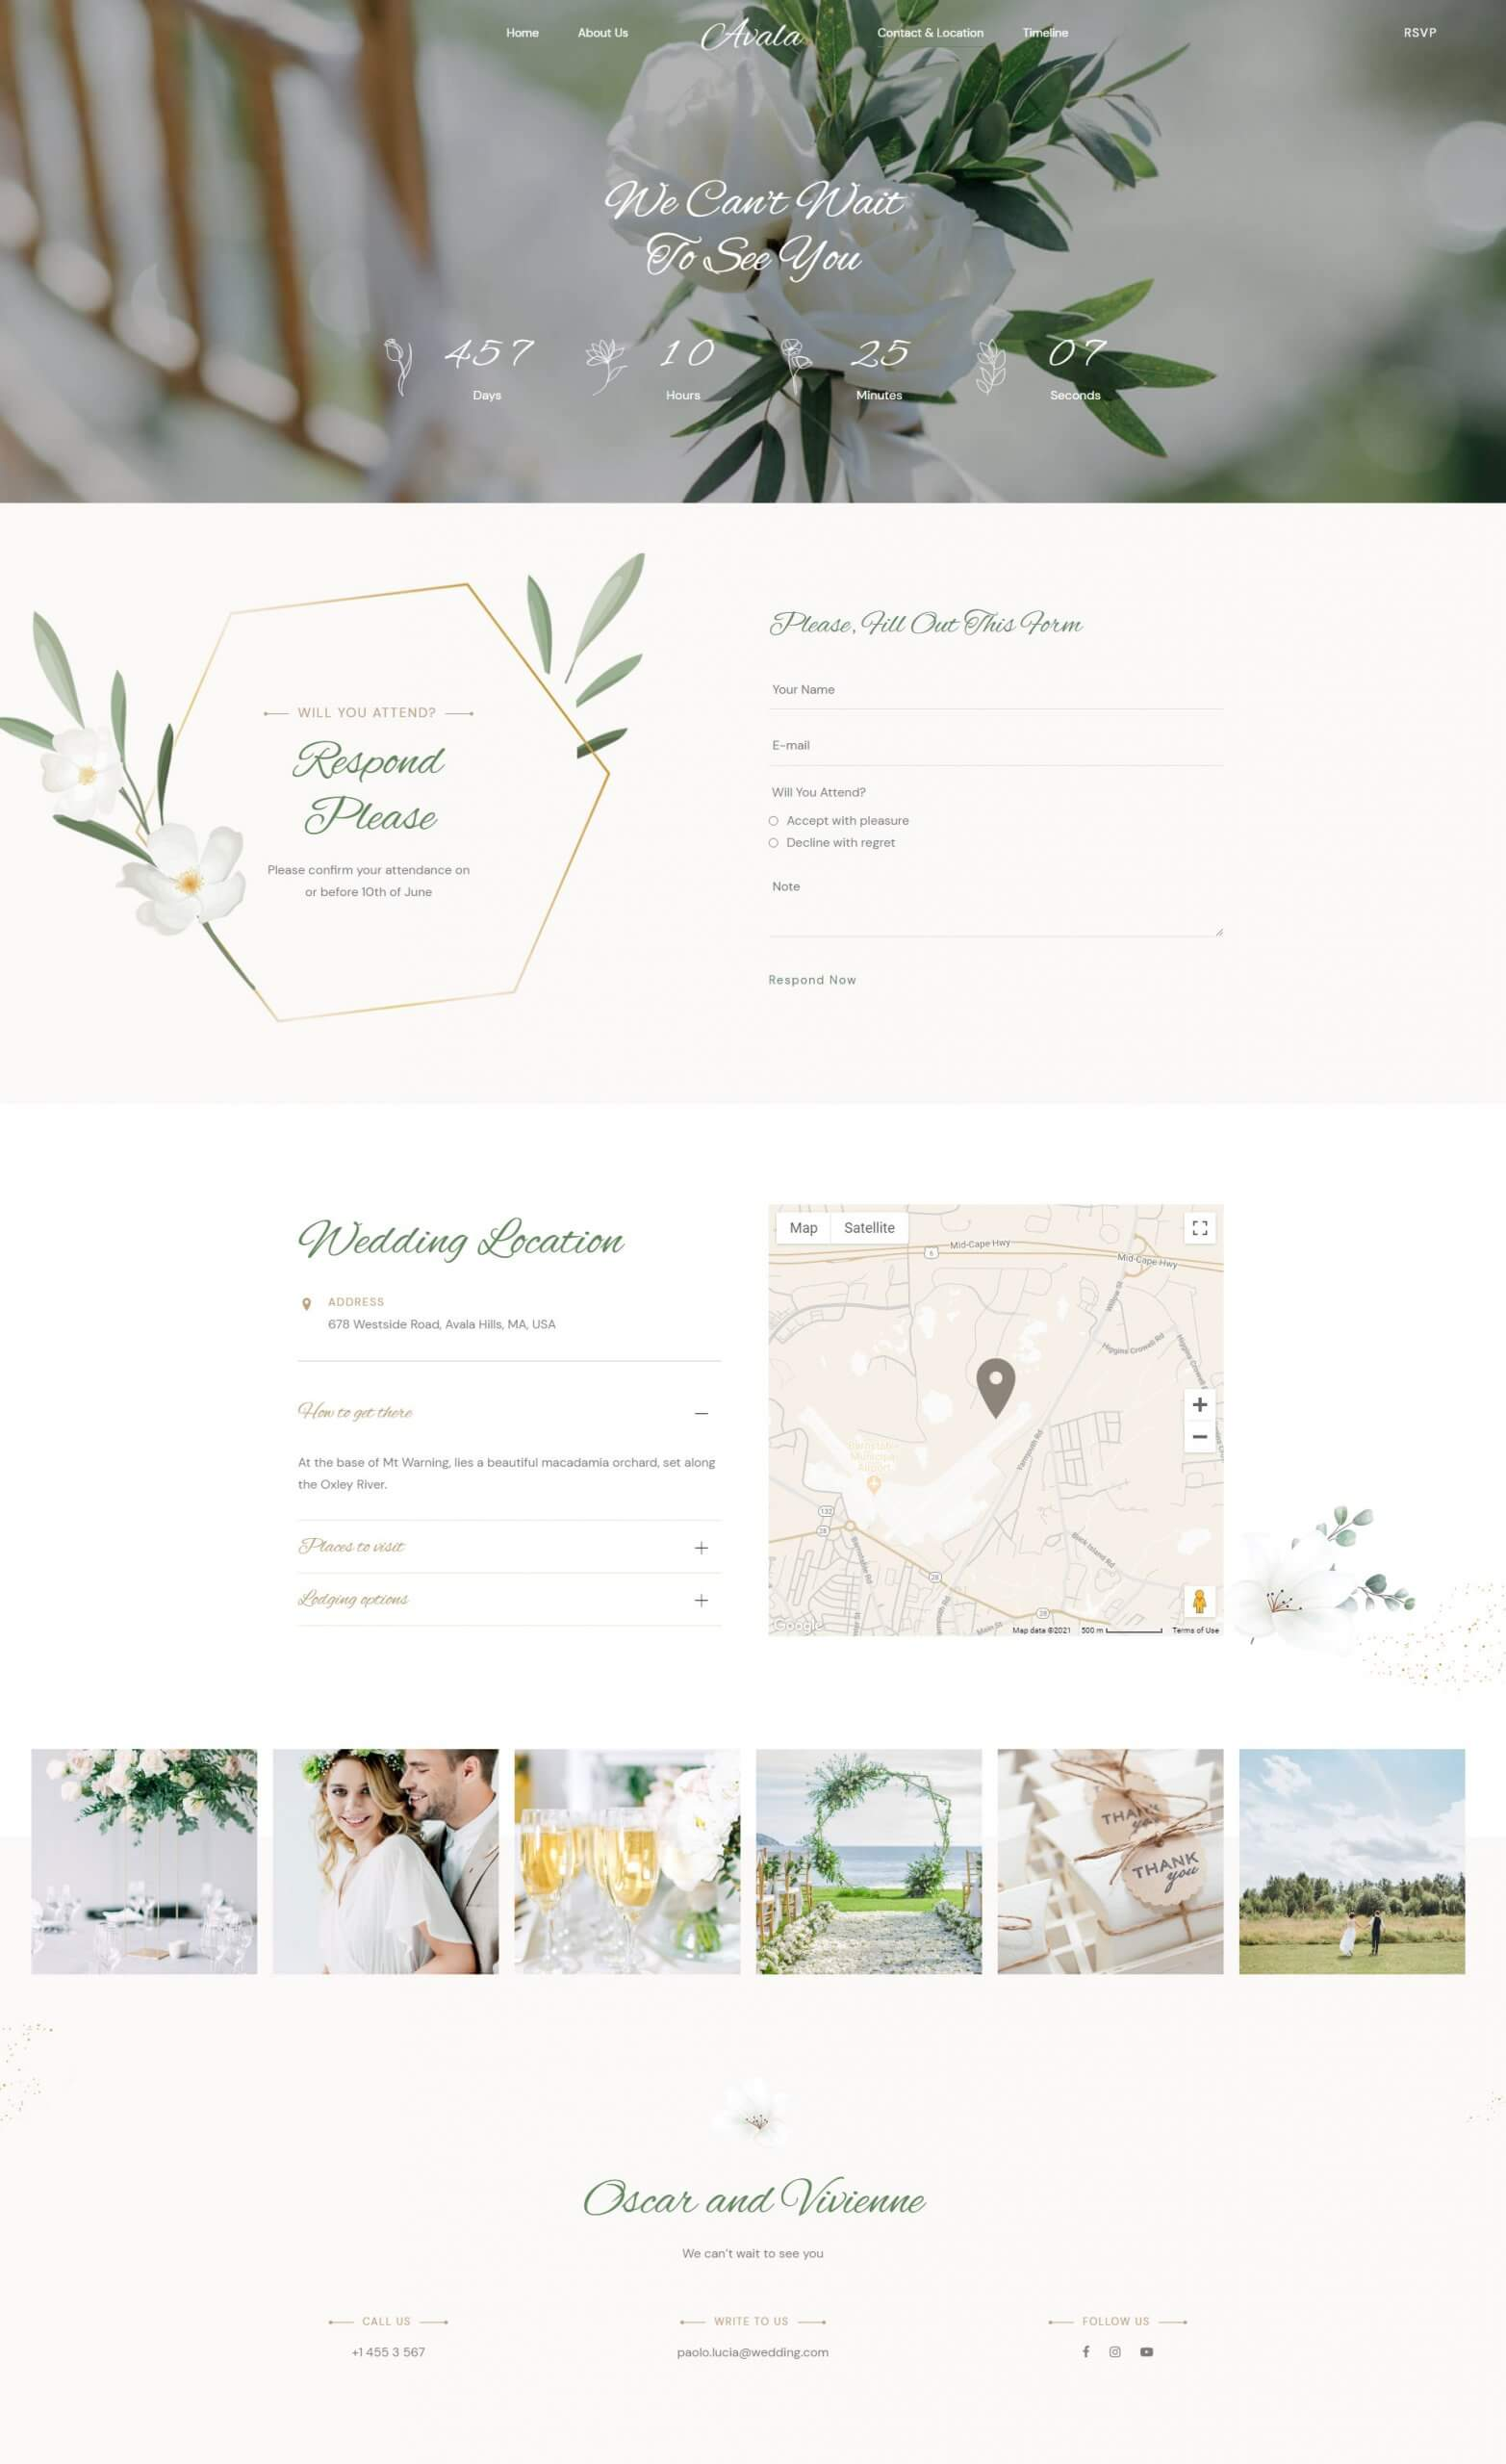 http://avala.bold-themes.com/wp-content/uploads/2021/02/Spring-Contact-Location-Couple-scaled.jpg